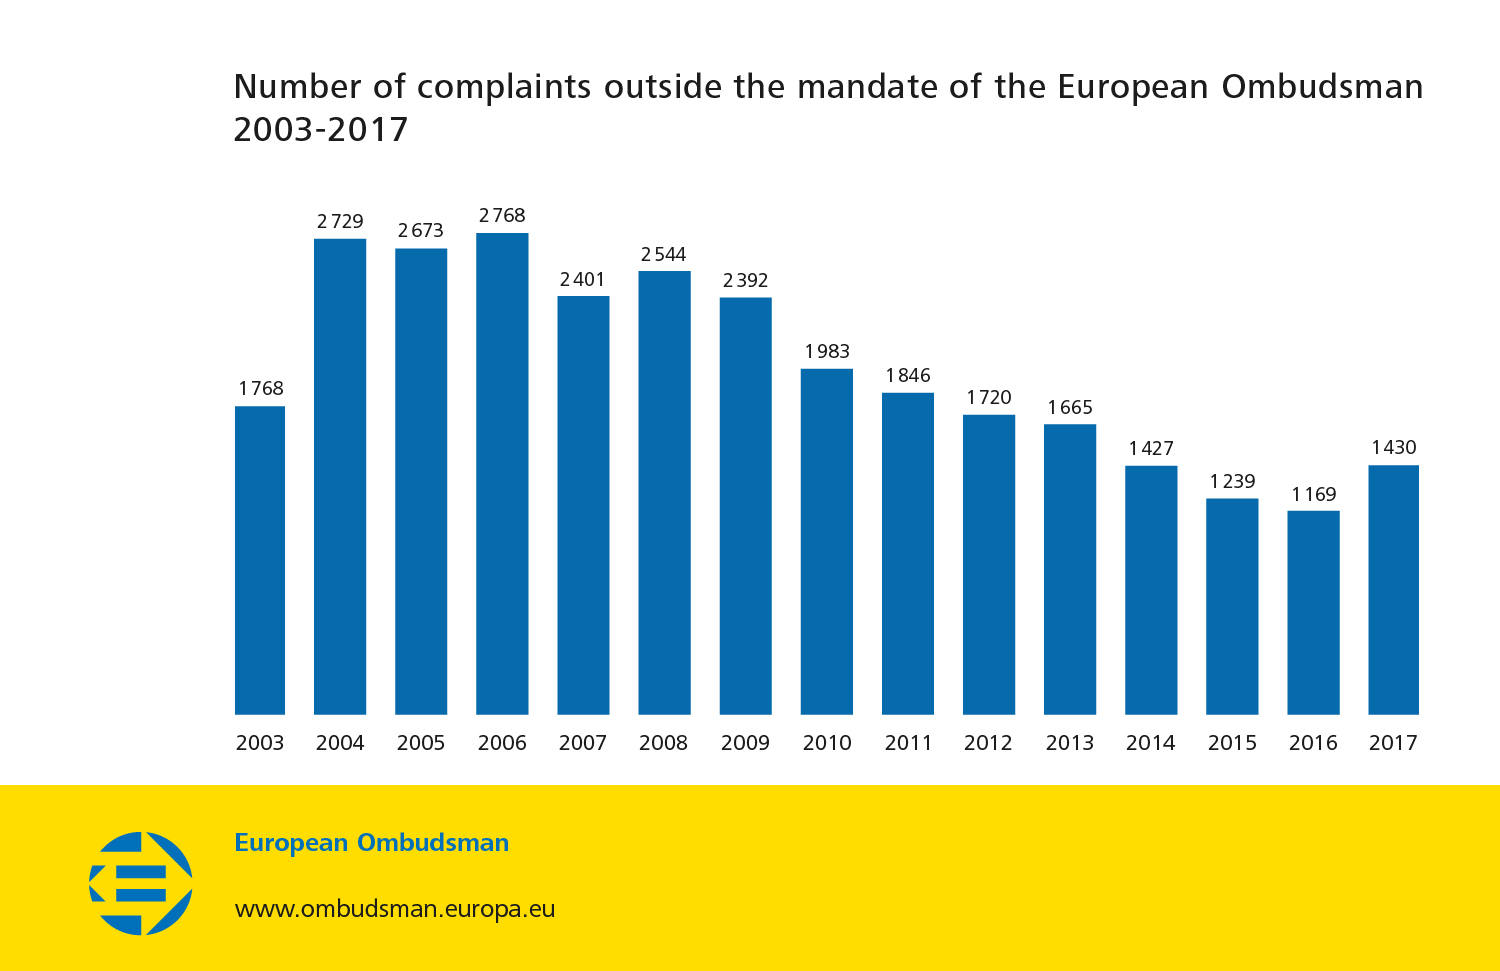 Number of complaints outside the mandate of the European Ombudsman 2003-2017